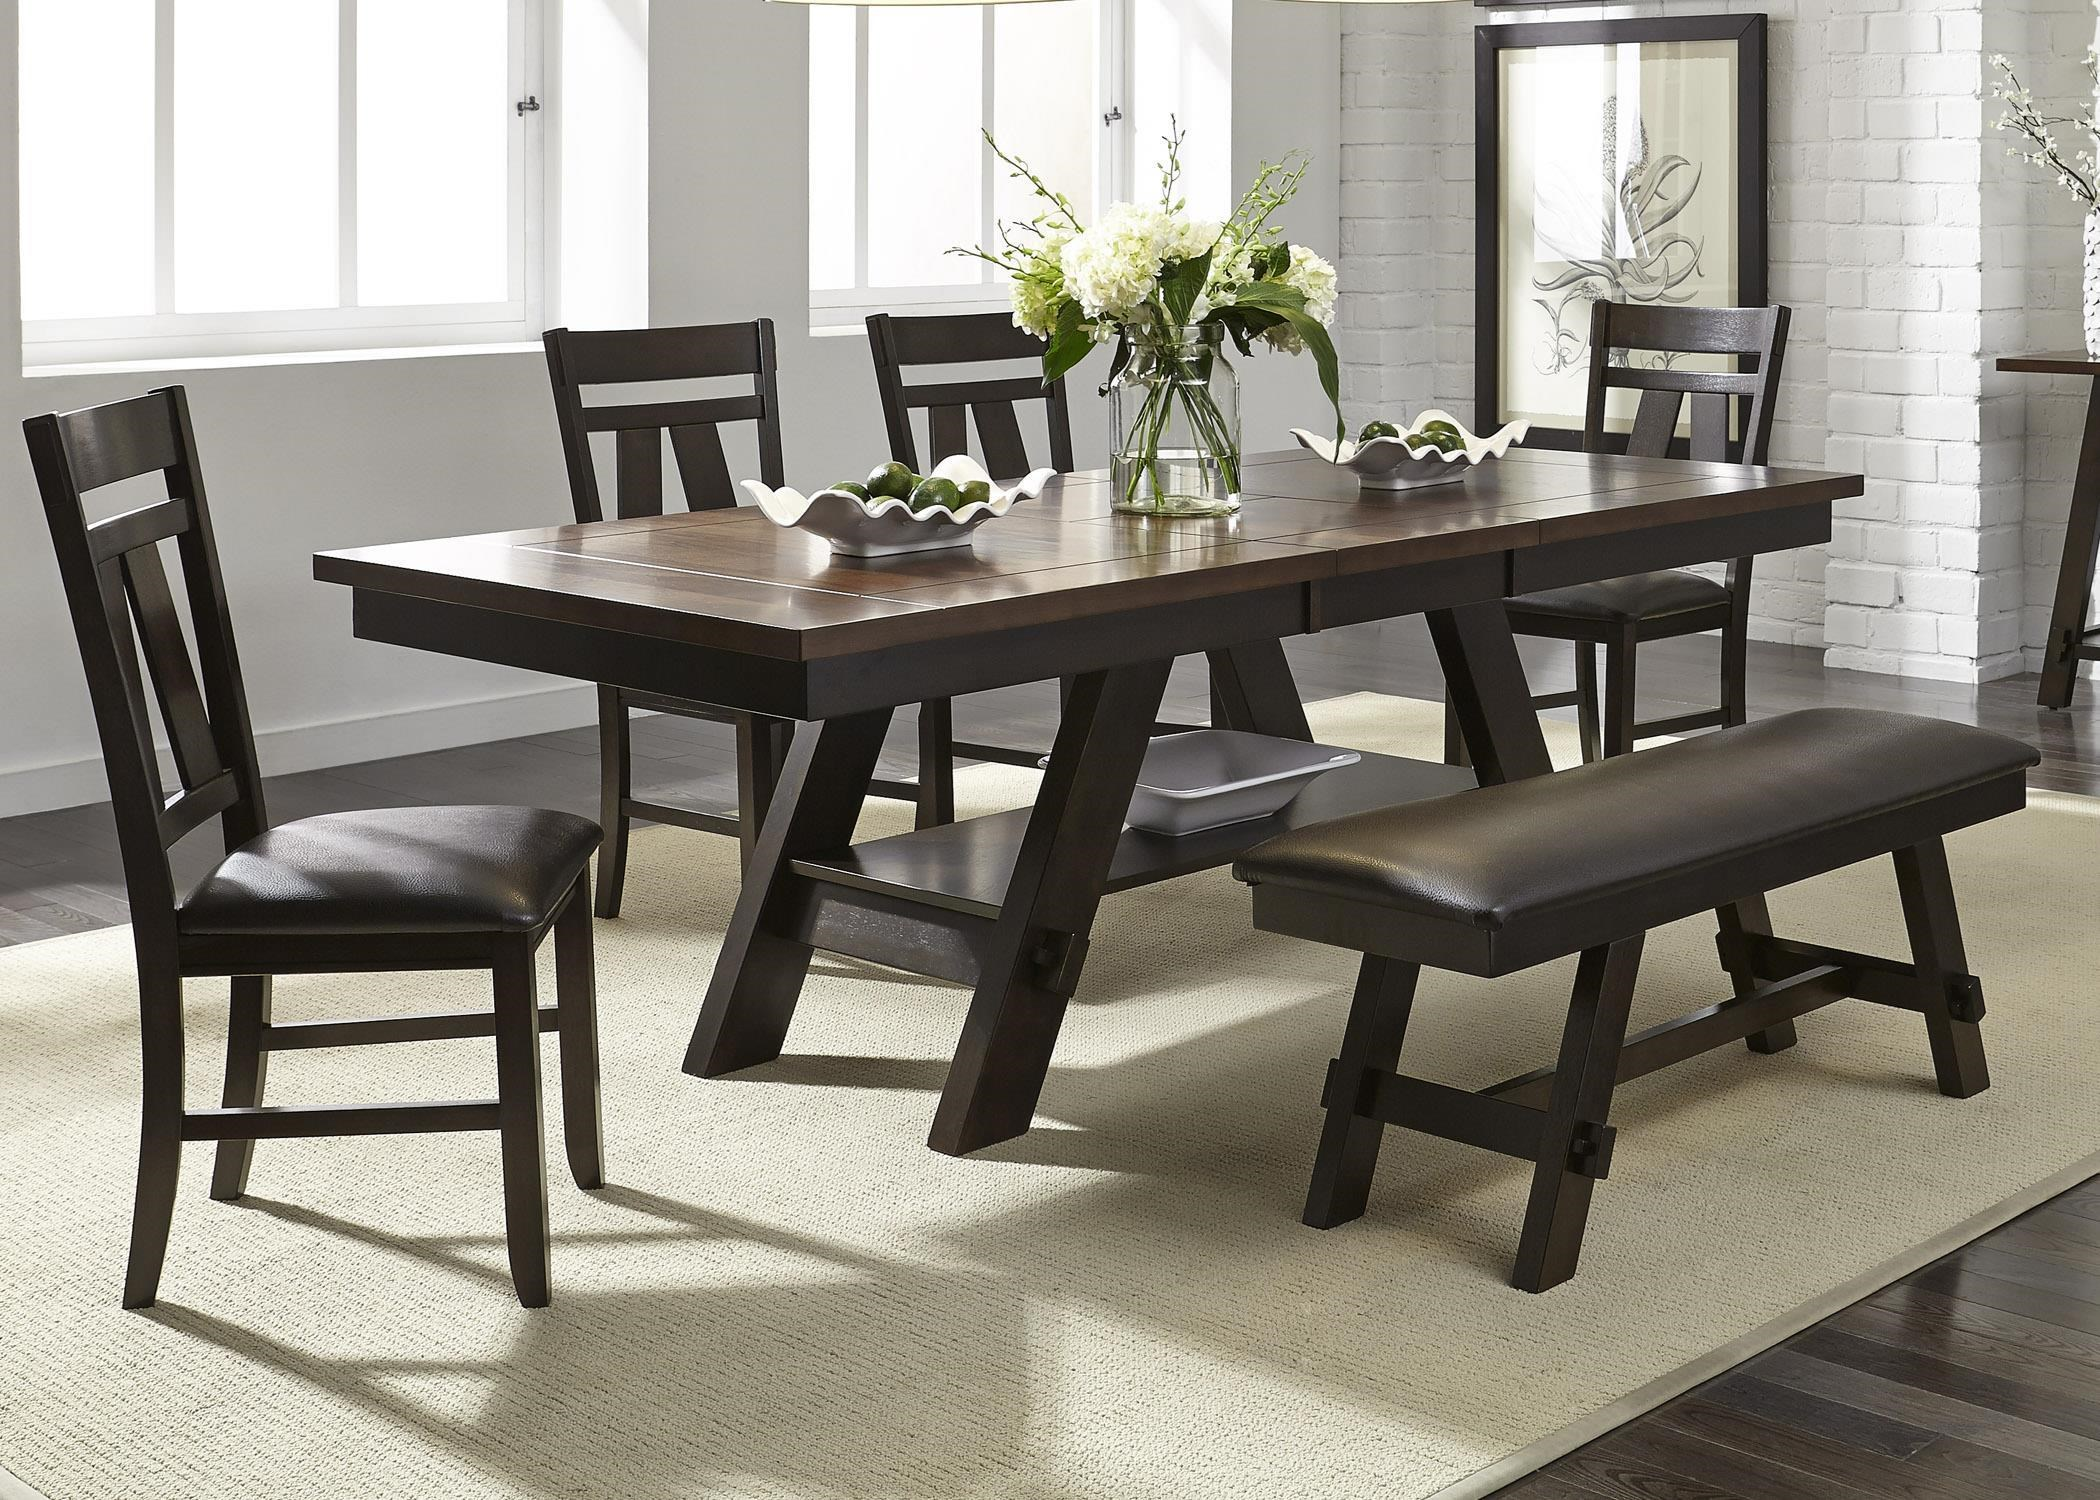 Lawson 5 Piece Dining Set by Liberty Furniture at Darvin Furniture